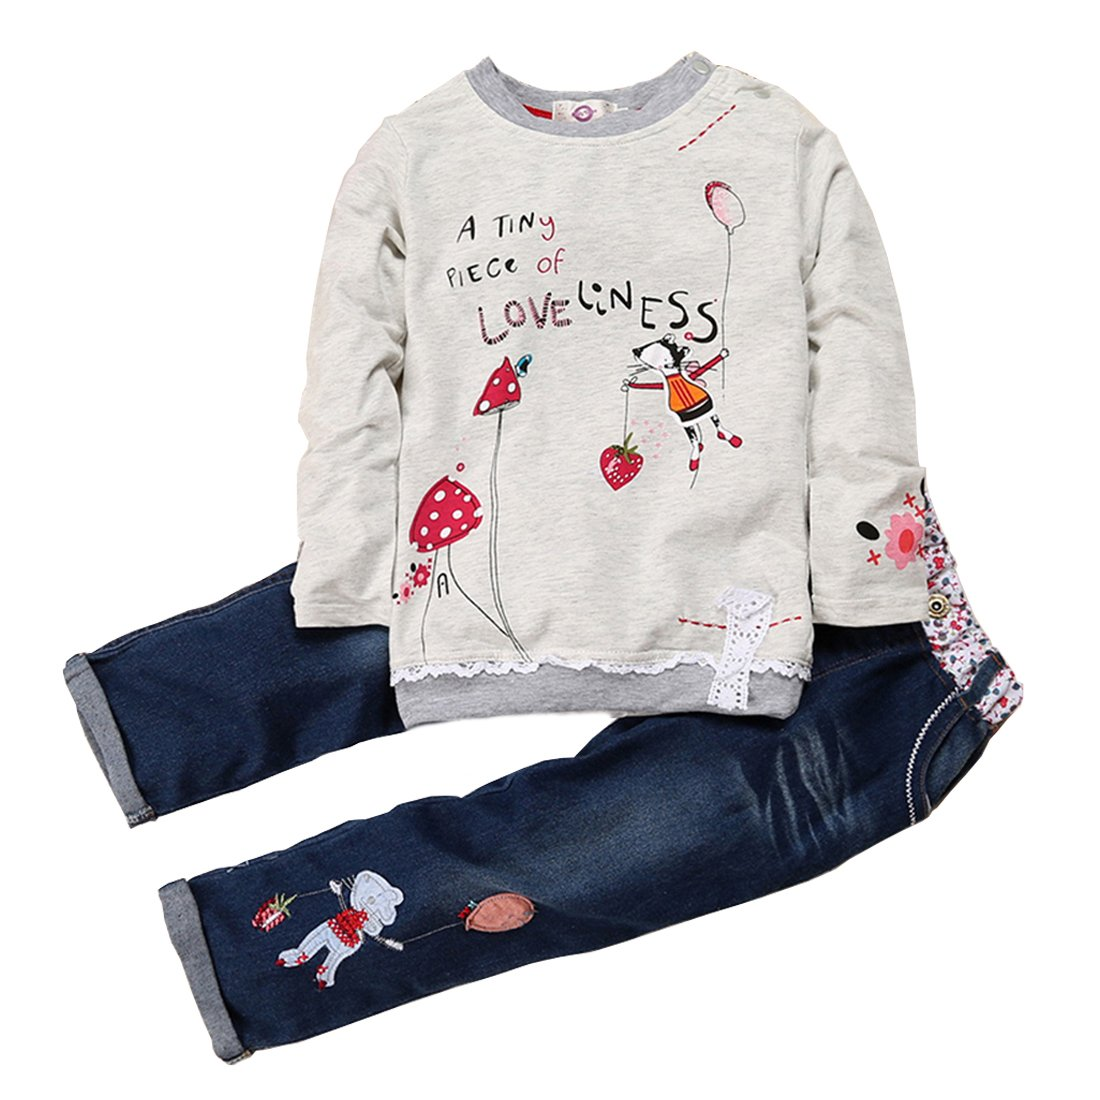 ZHUANNIAN Baby Girls Long Sleeve Sweater Top and Jeans Outfit Set